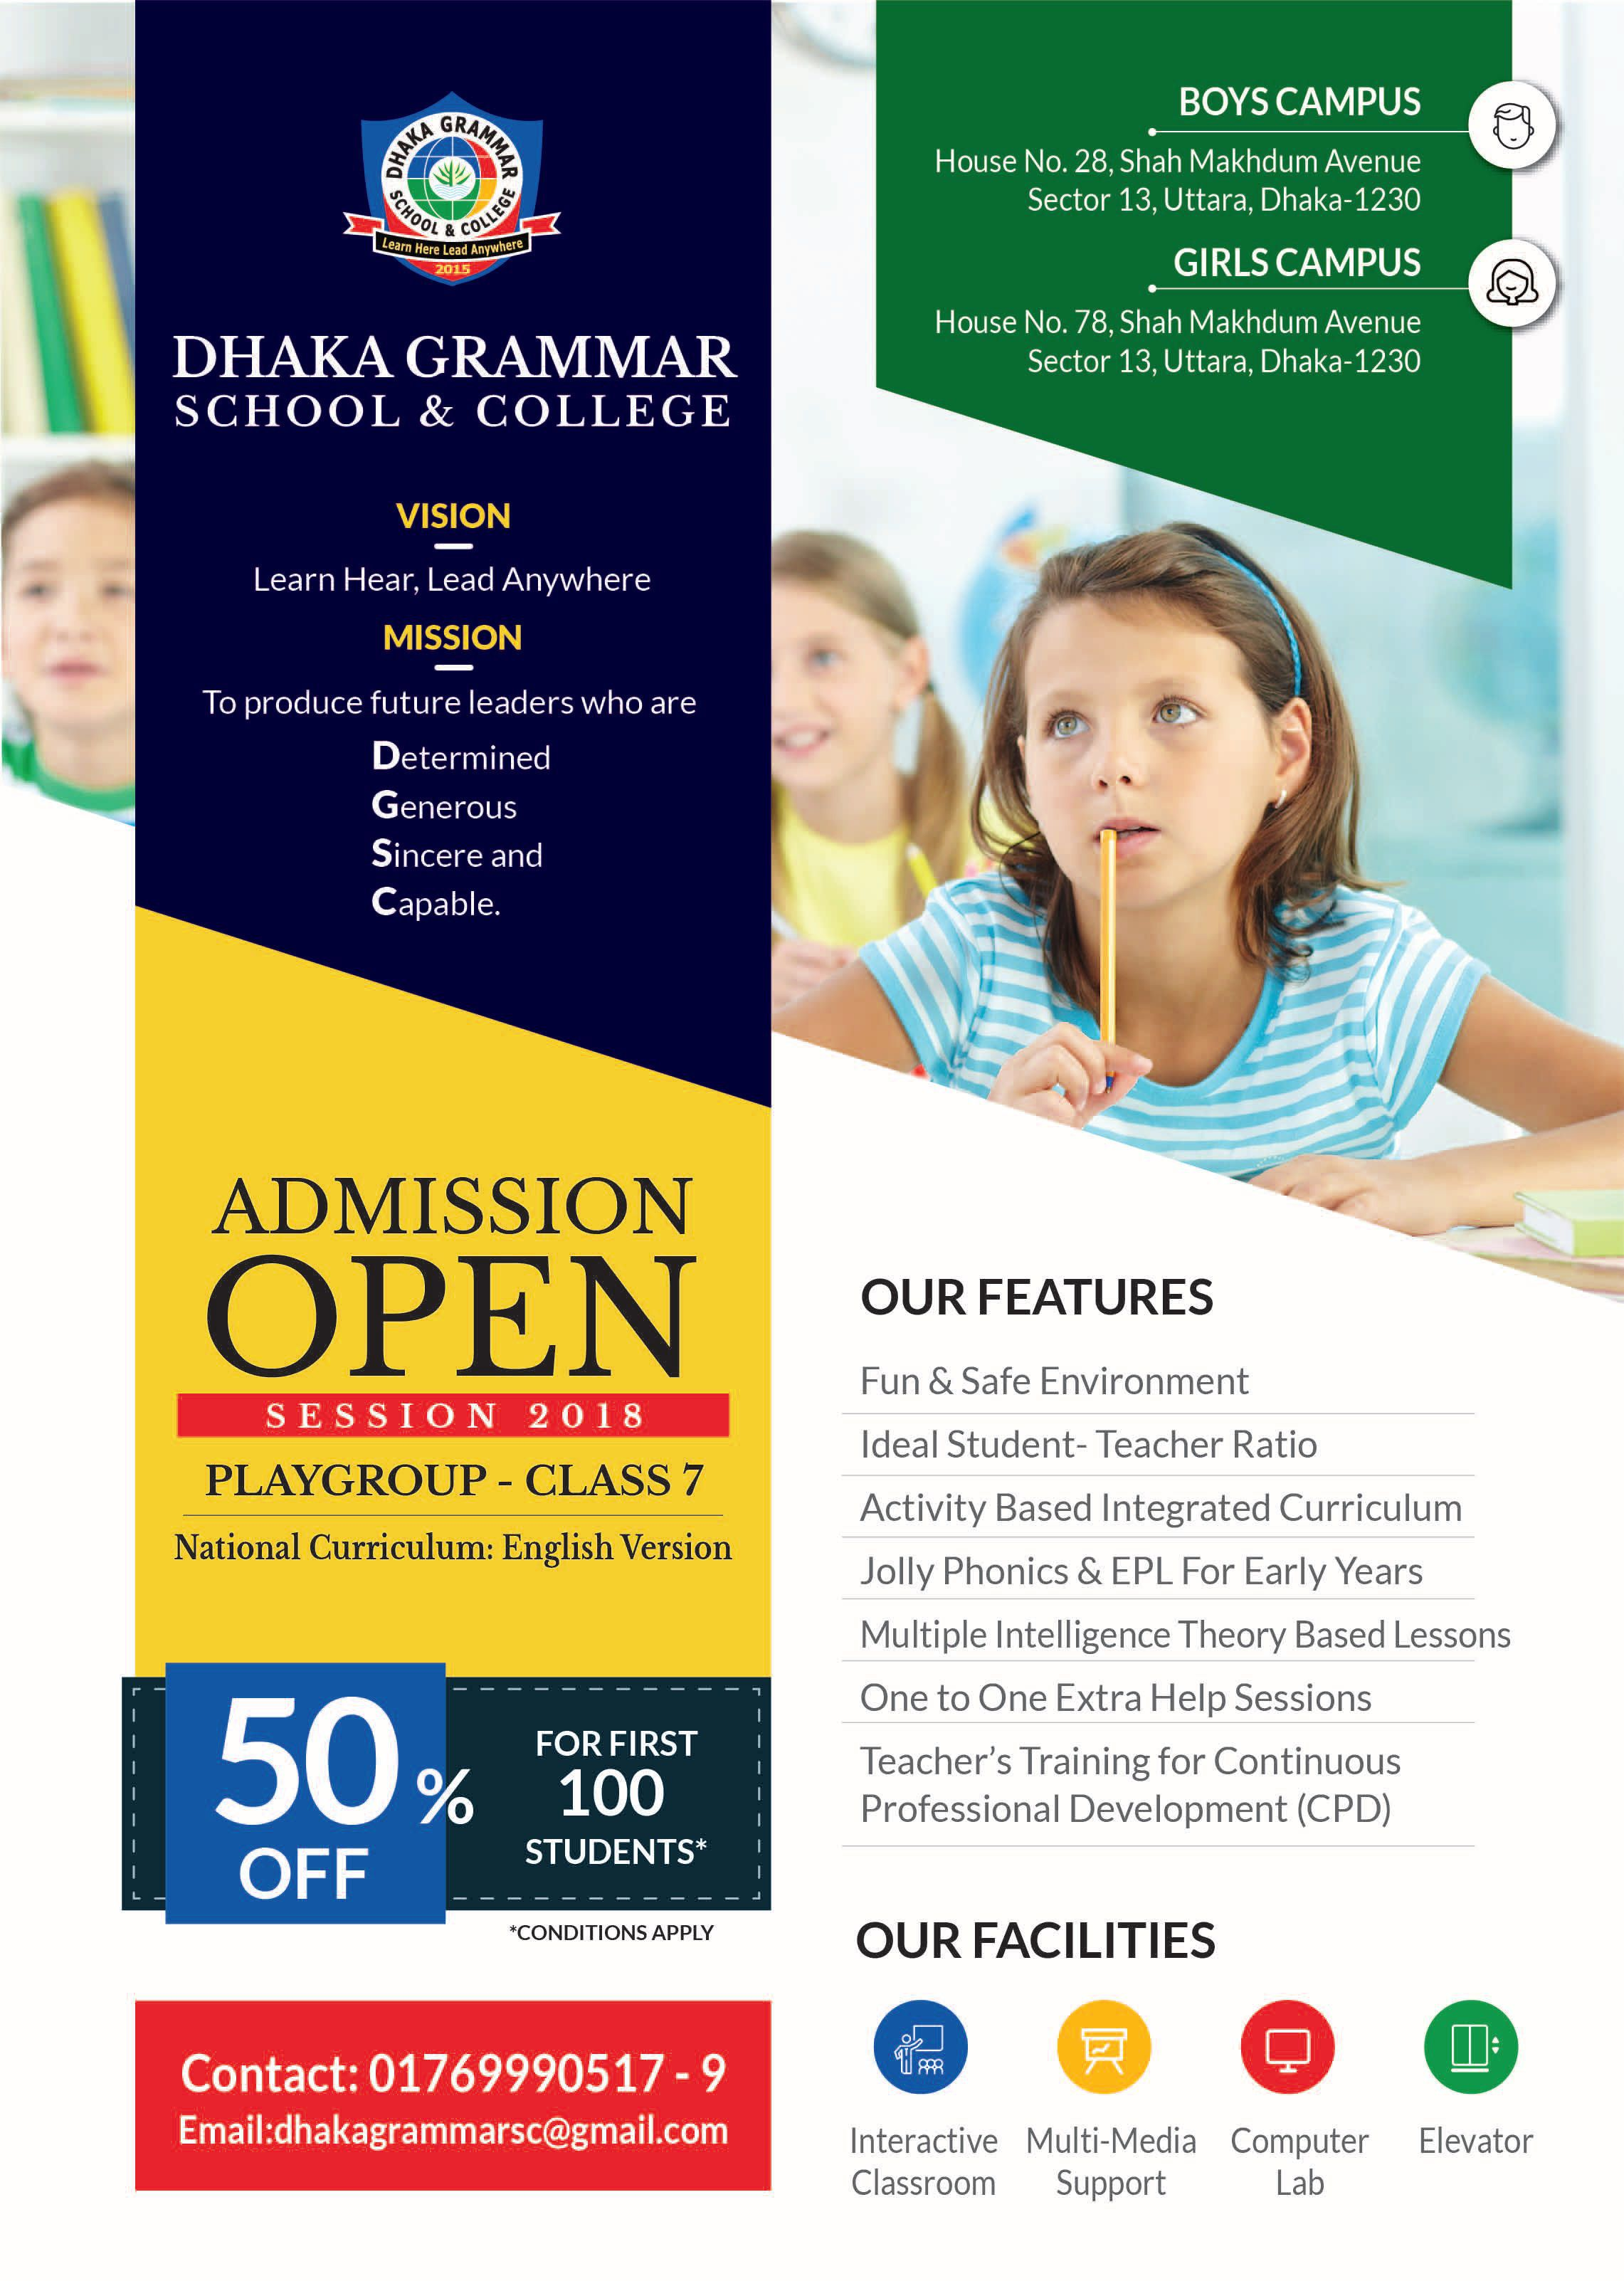 001 Outstanding School Open House Flyer Template Highest Clarity  Free MicrosoftFull